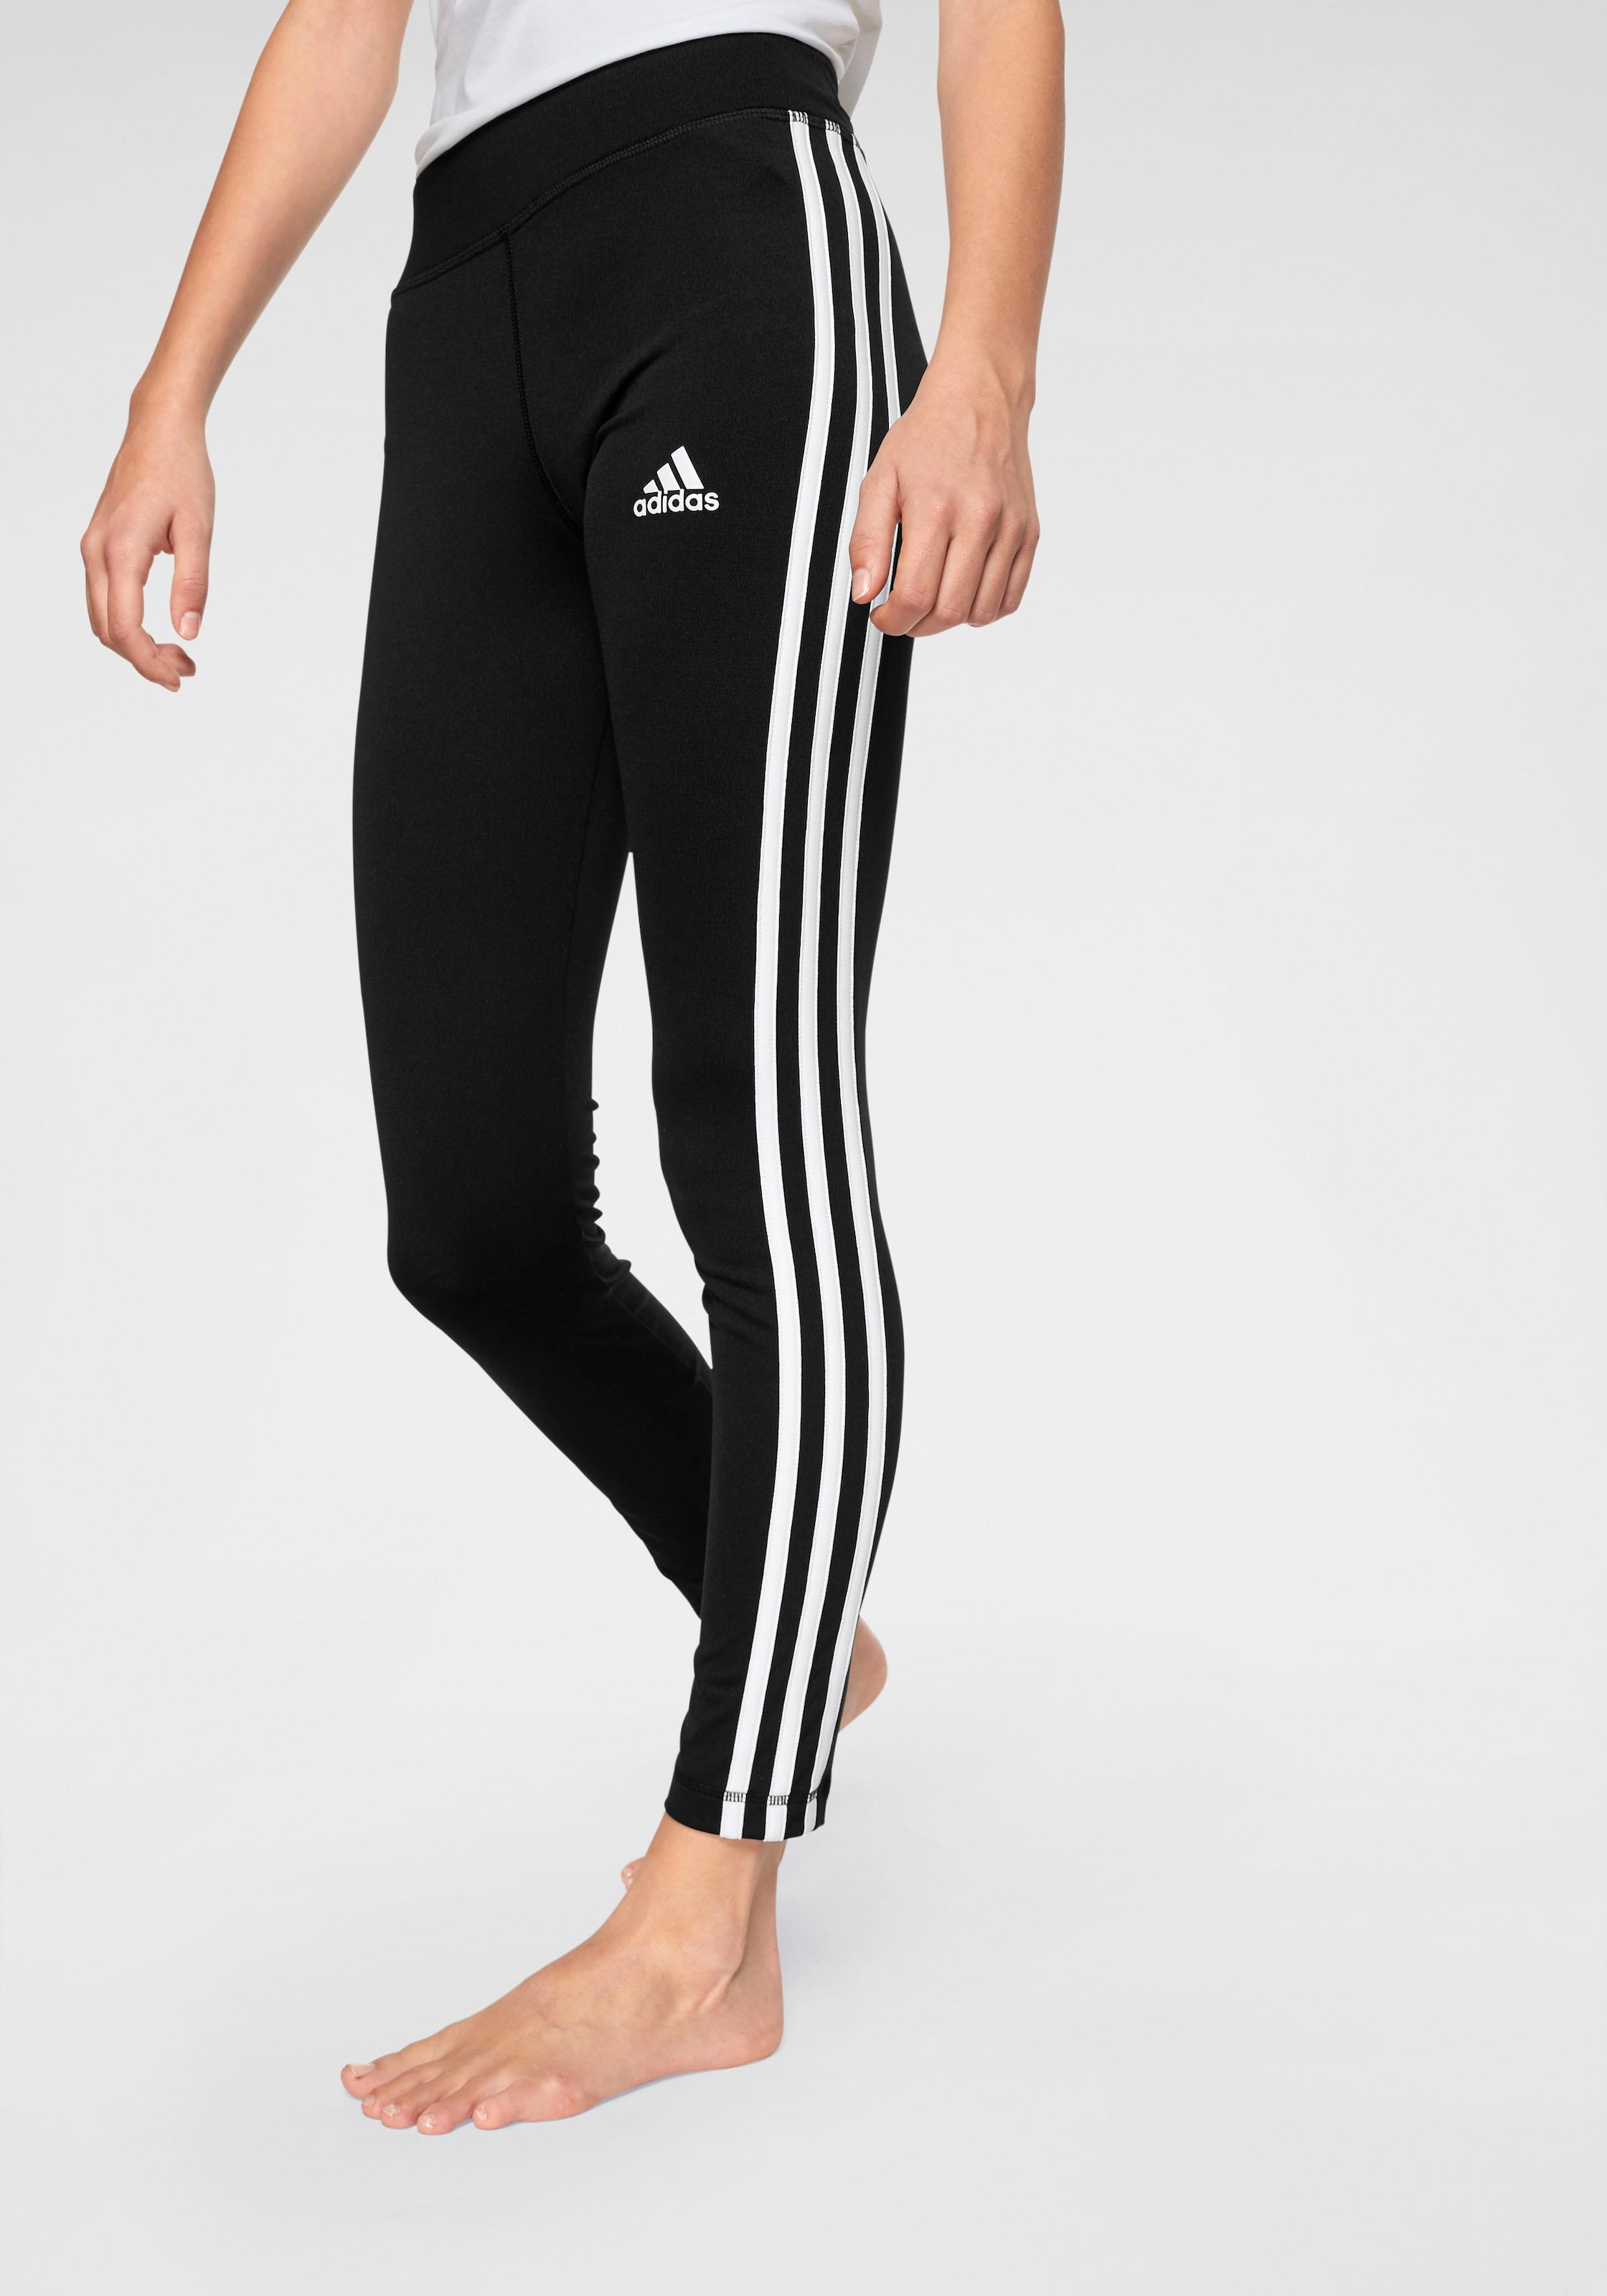 adidas Performance Funktionstights »YOUNG GIRL TRAINING EQUIPMENT 3 STRIPES LONG TIGHT« kaufen | BAUR